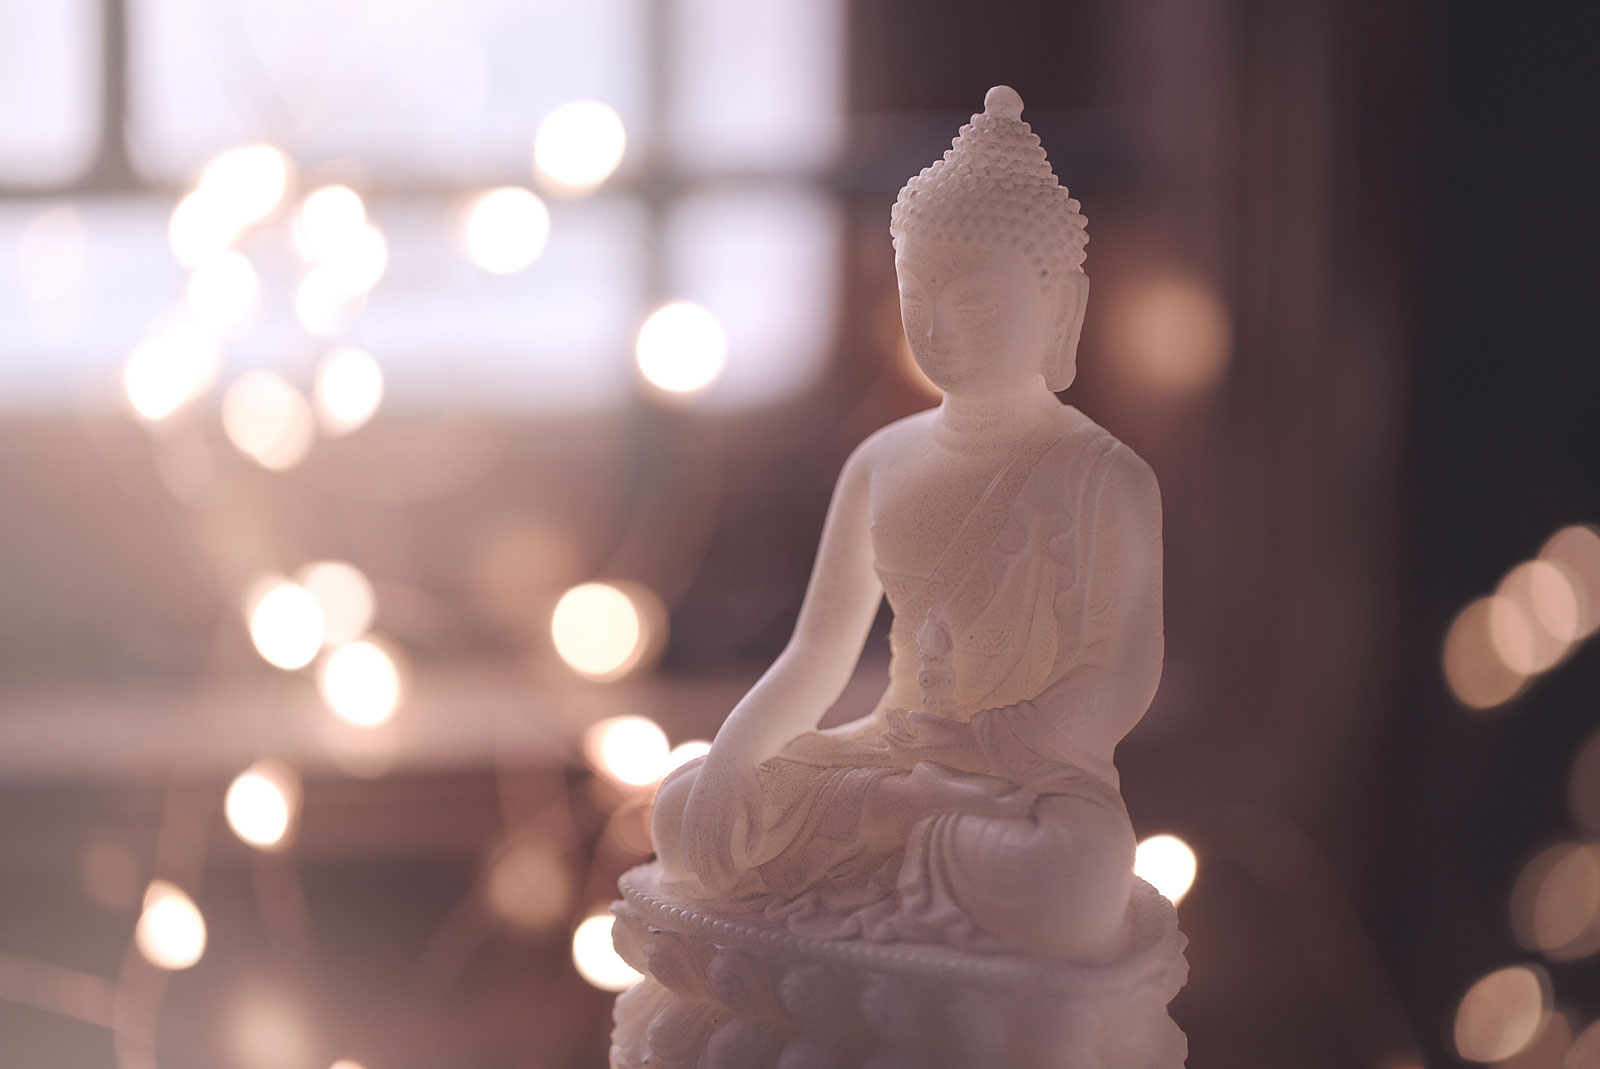 Meditating Every Day and What to Do When You Don't